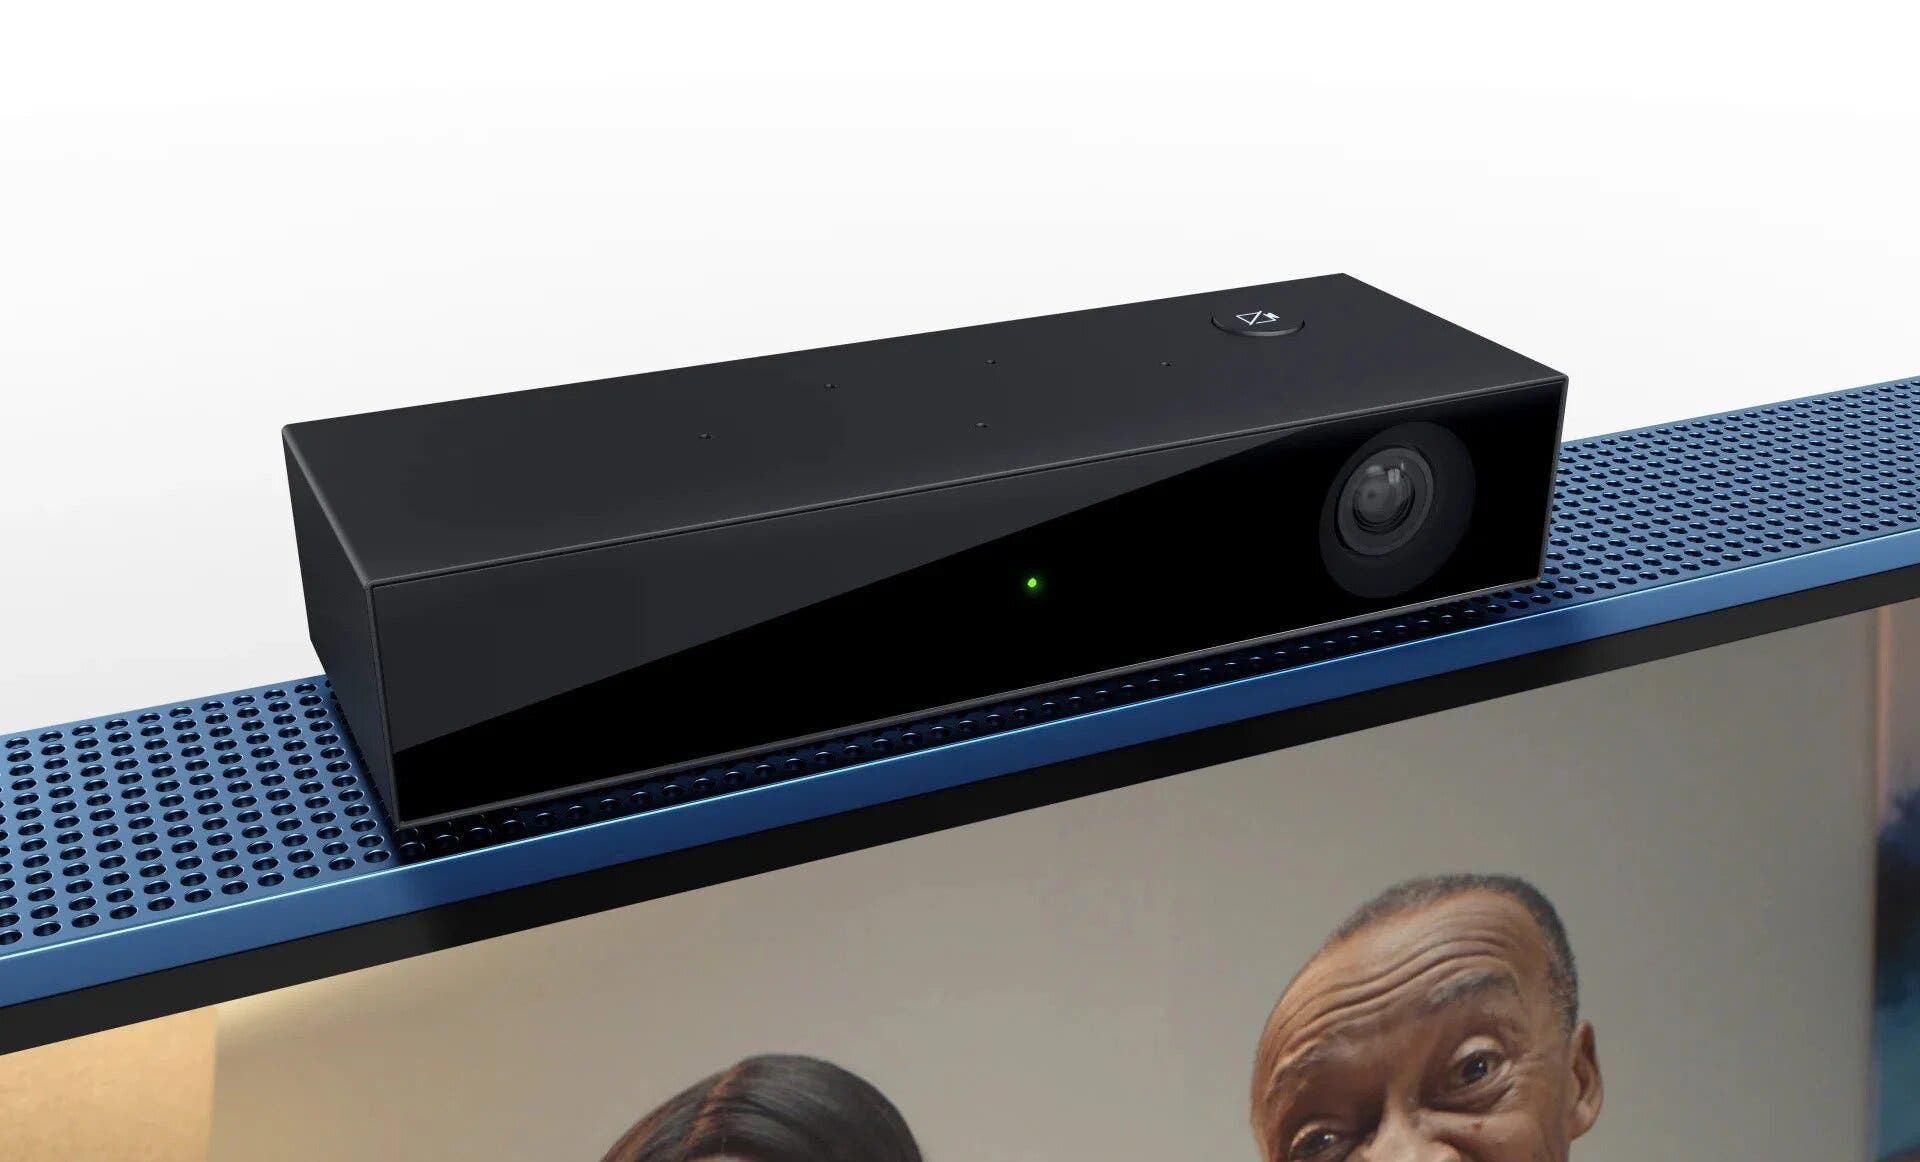 Sky TV has partnered with Microsoft to resurrect the Kinect